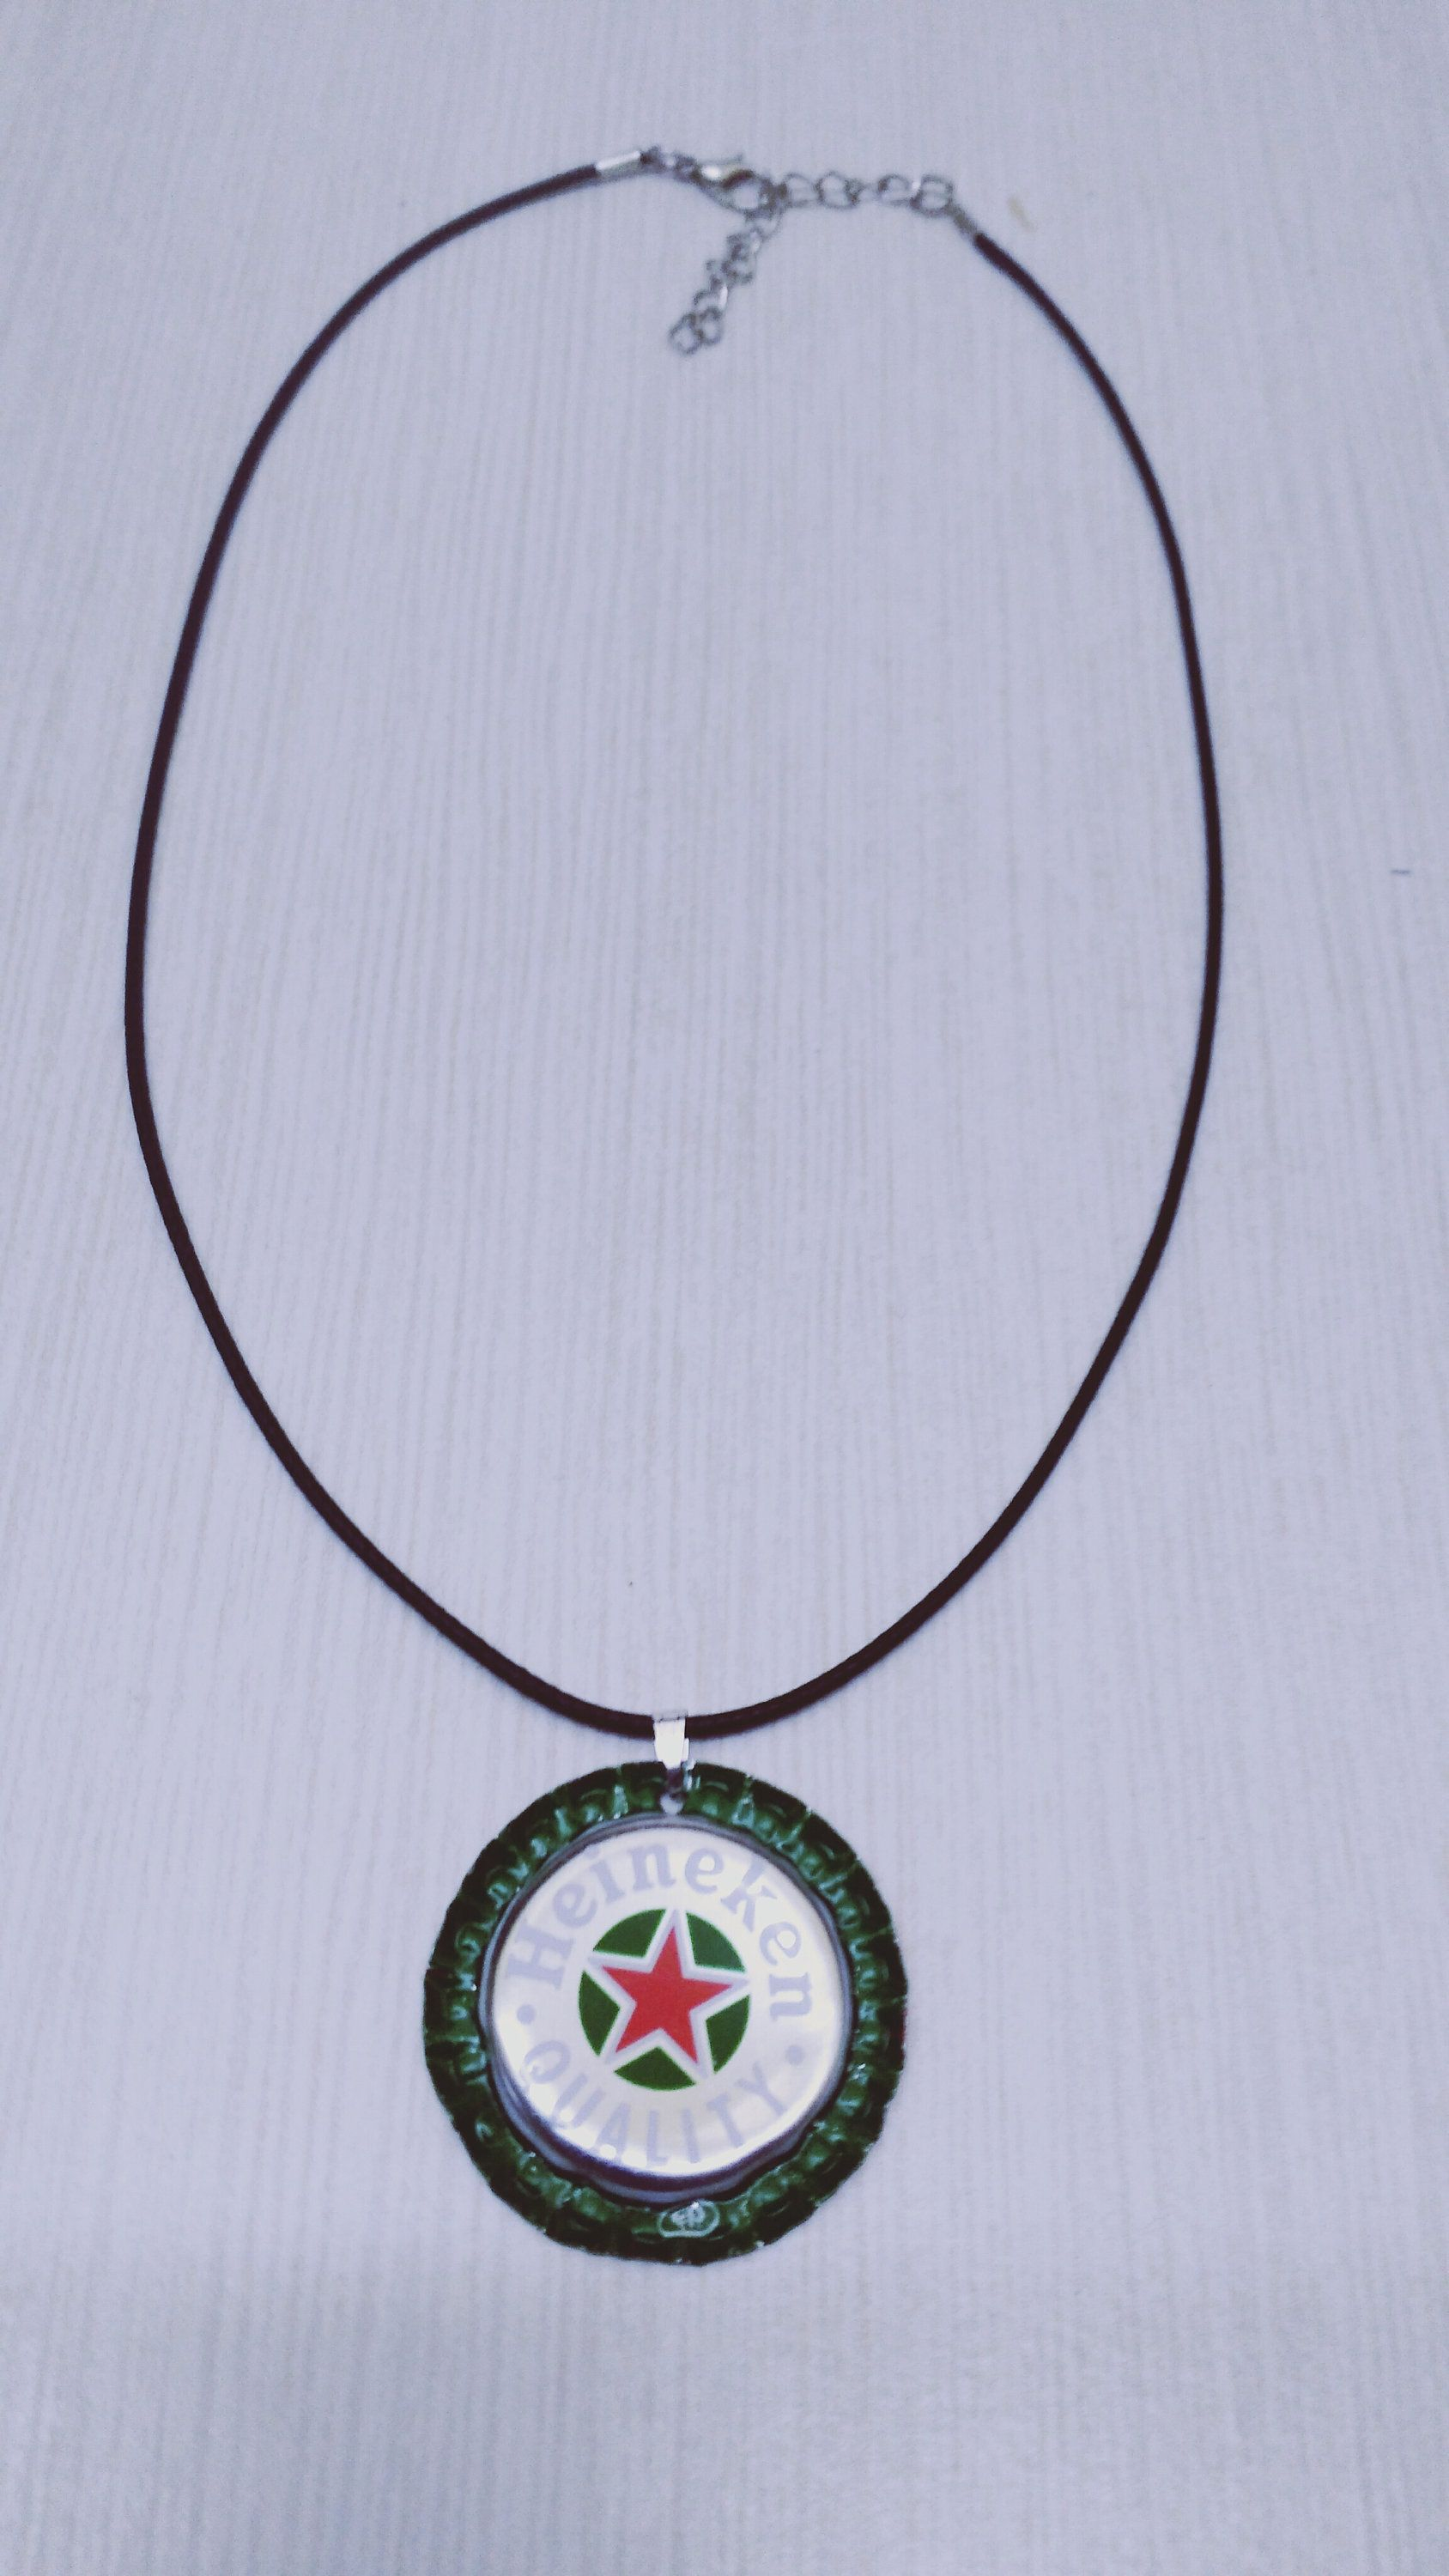 collier homme rond